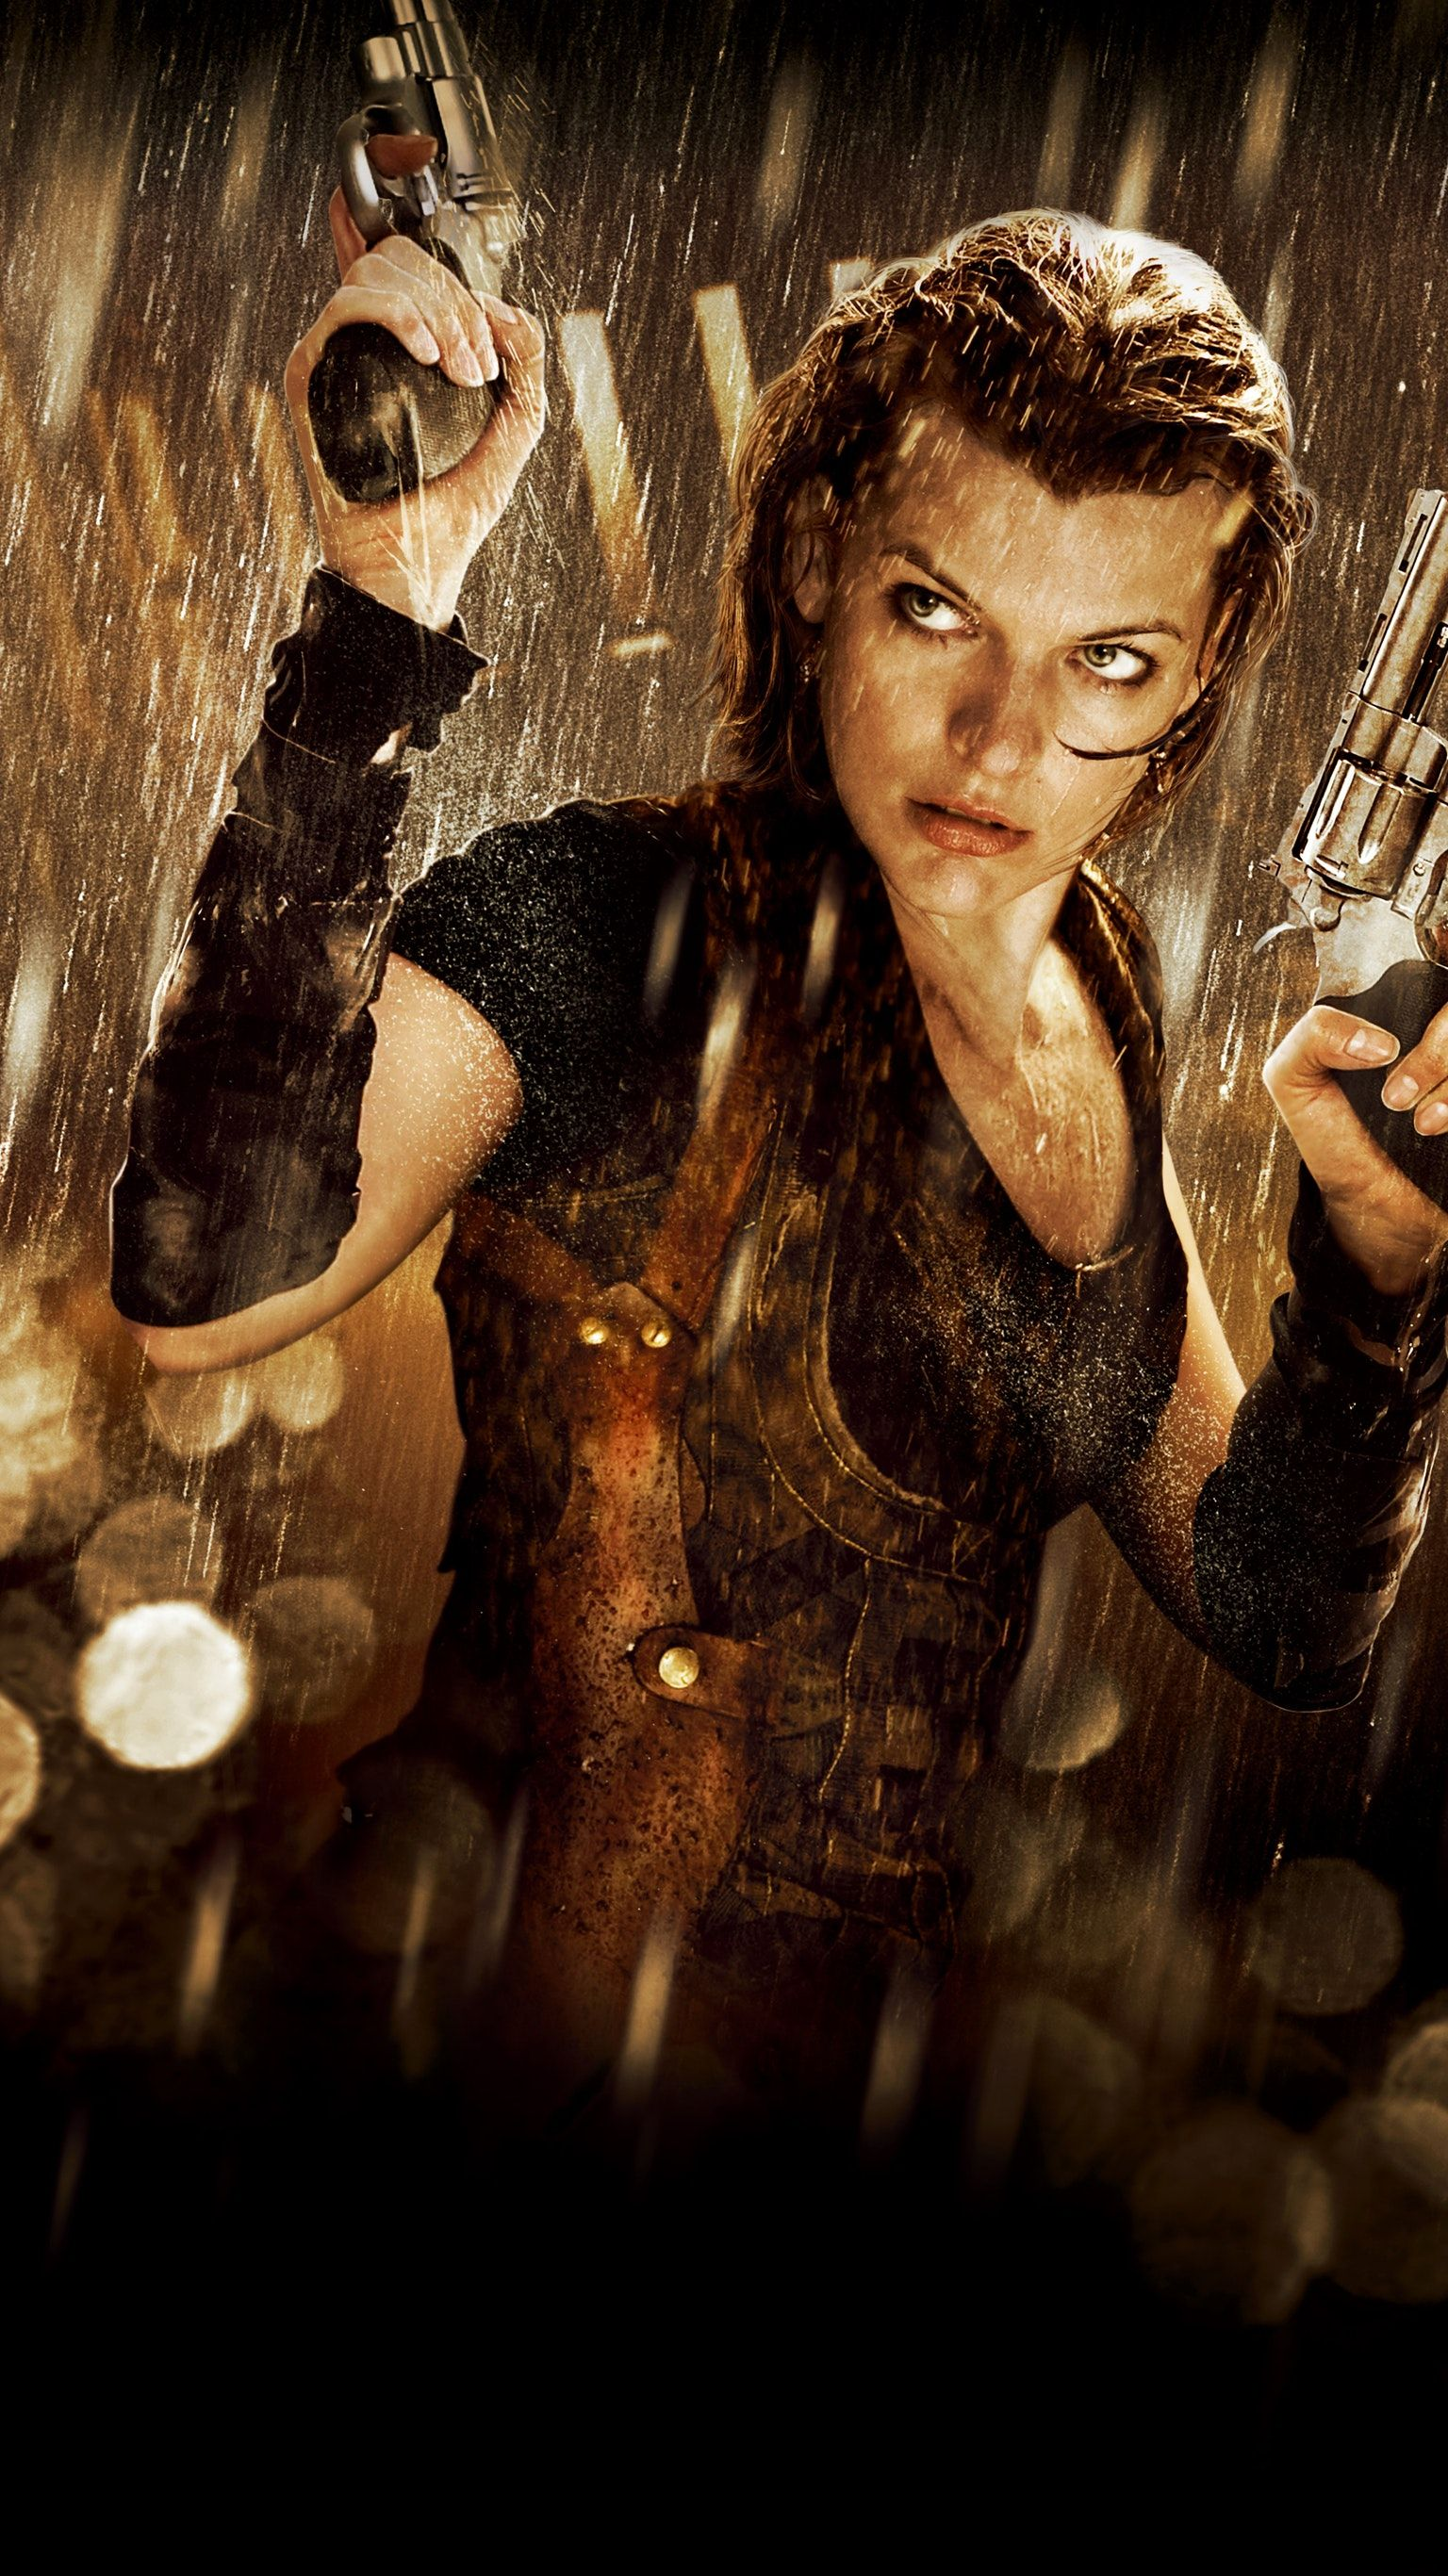 Resident Evil Afterlife 2010 Phone Wallpaper Moviemania Resident Evil Resident Evil Movie Resident Evil Alice